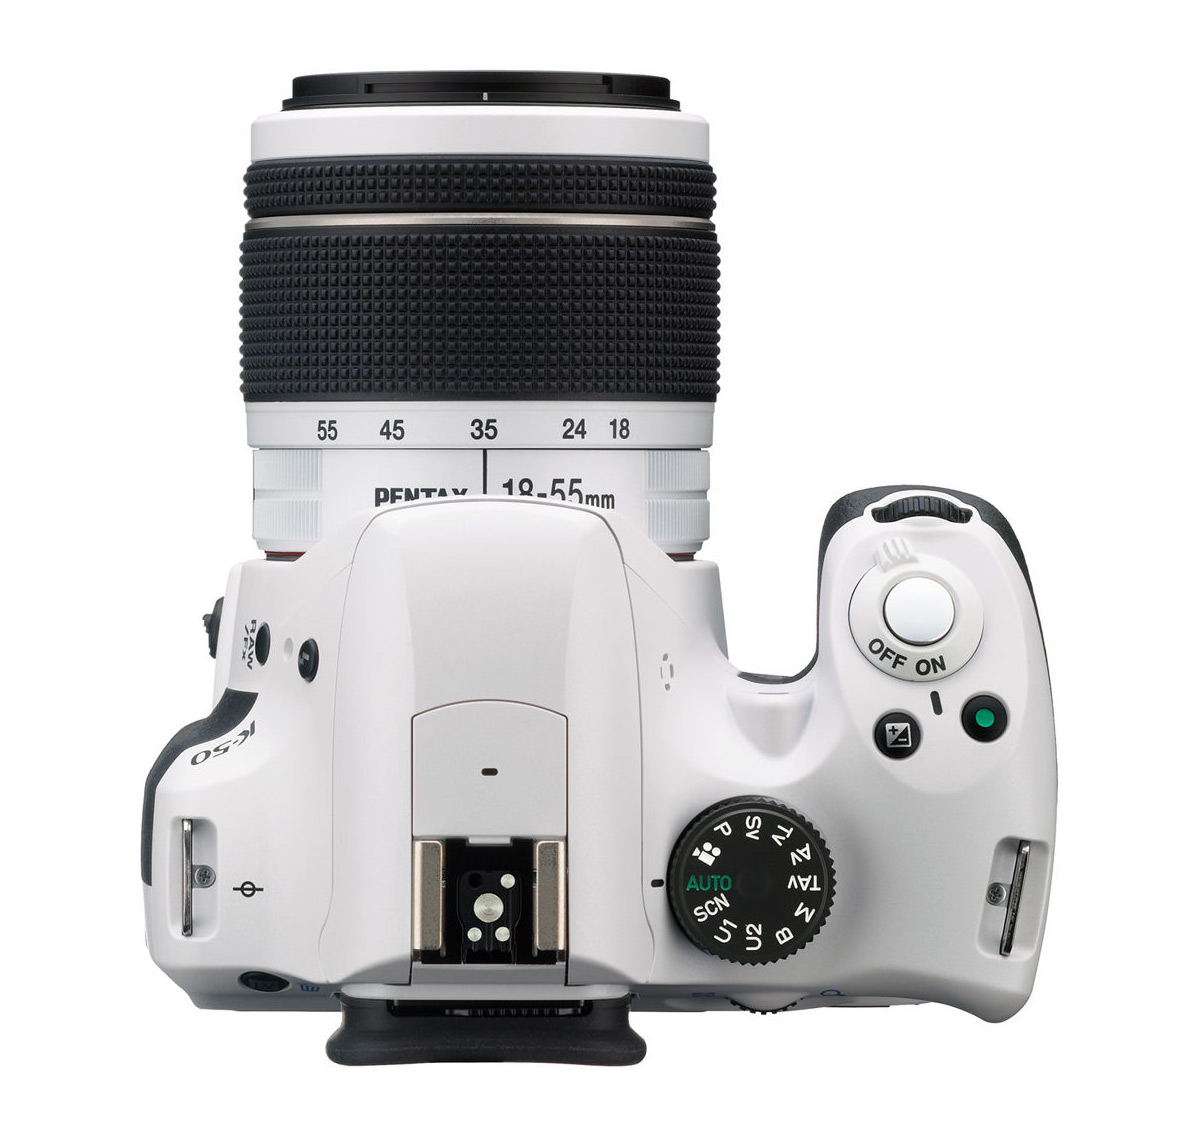 White Pentax K-50 DSLR - Top View With White Kit Lens